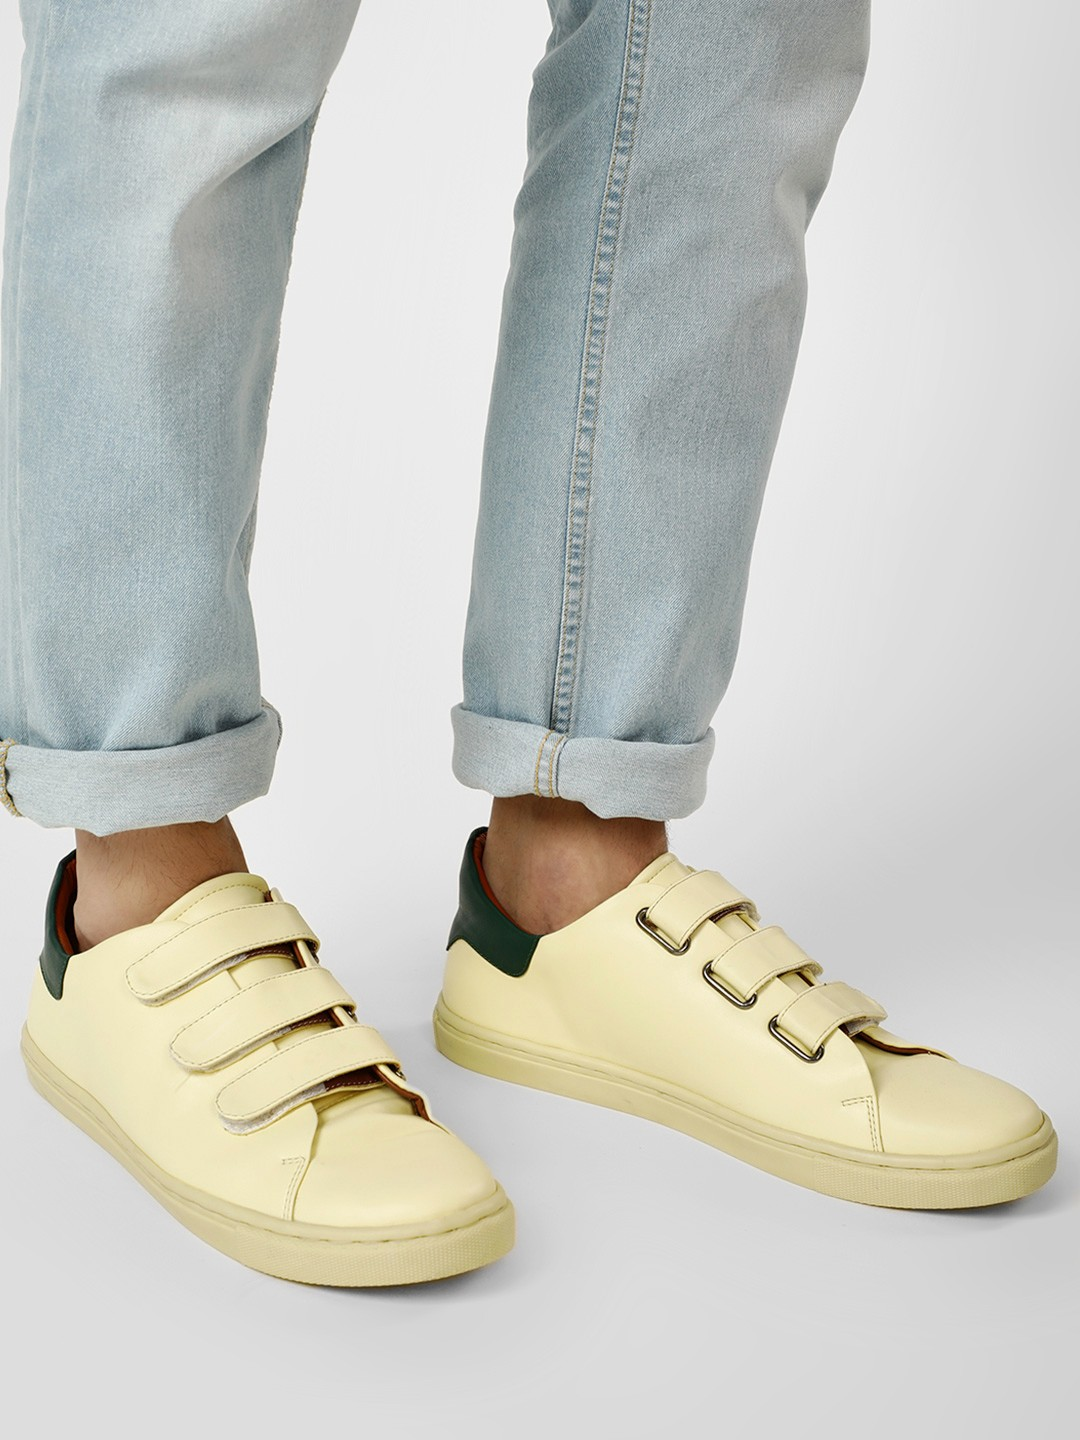 Bolt Of The Good Stuff Yellow Contrast Tab Multi-Closure Sneakers 1